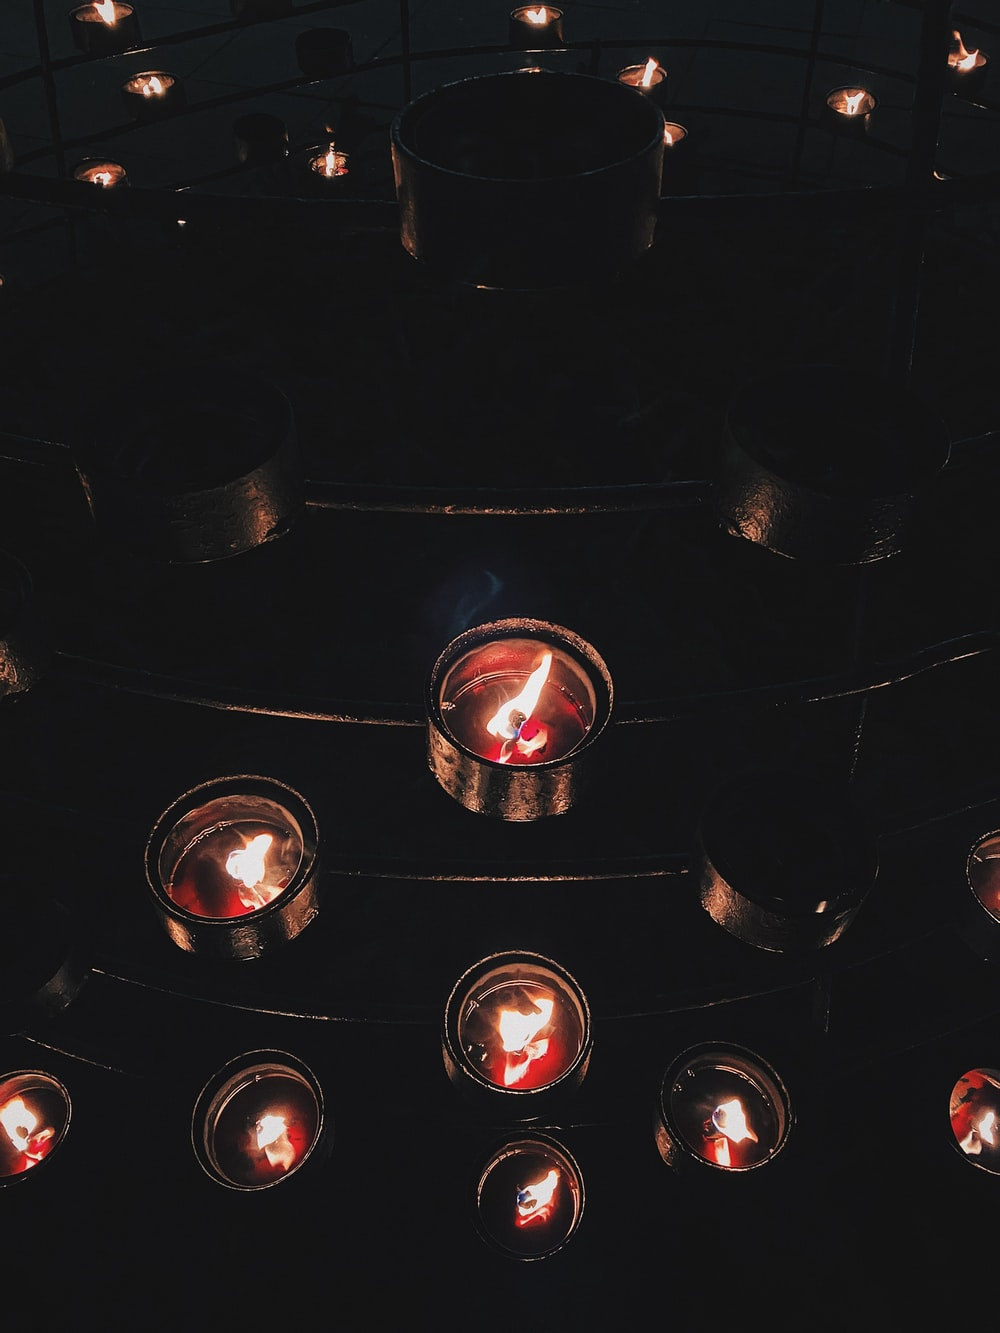 black and red gas stove